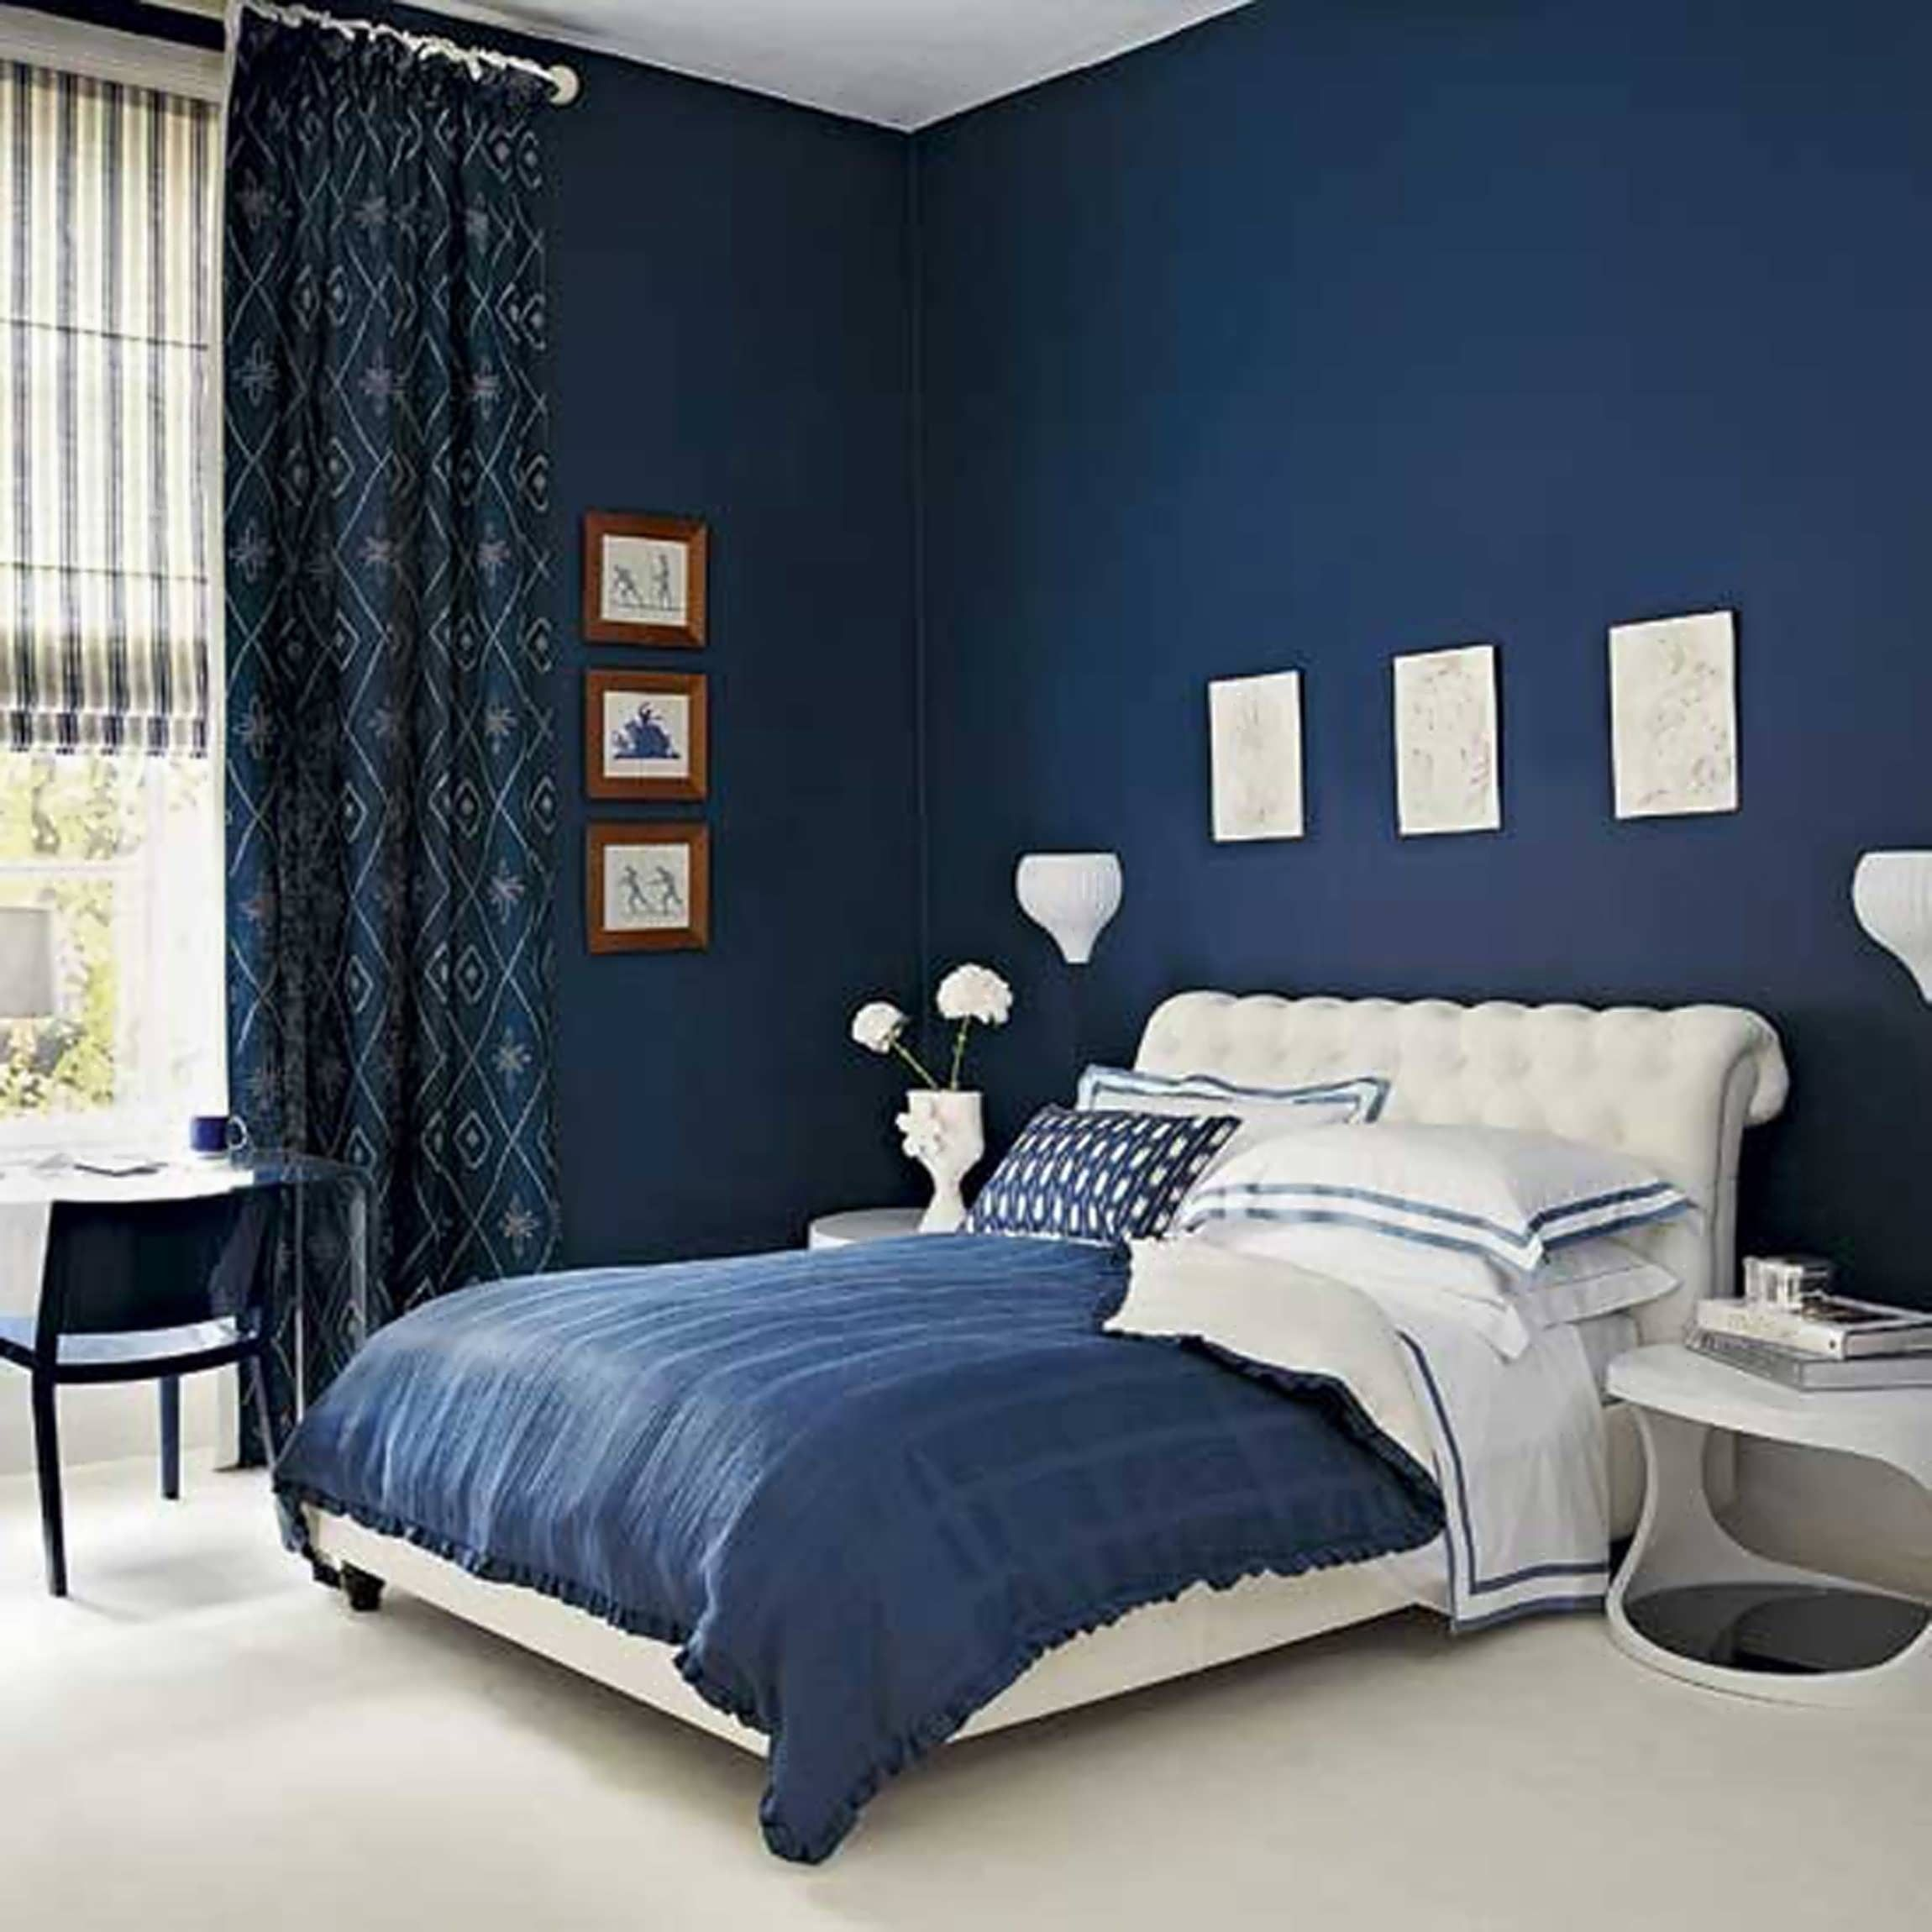 10 Royal Blue Bedroom Ideas Most Stylish And Attractive Blue